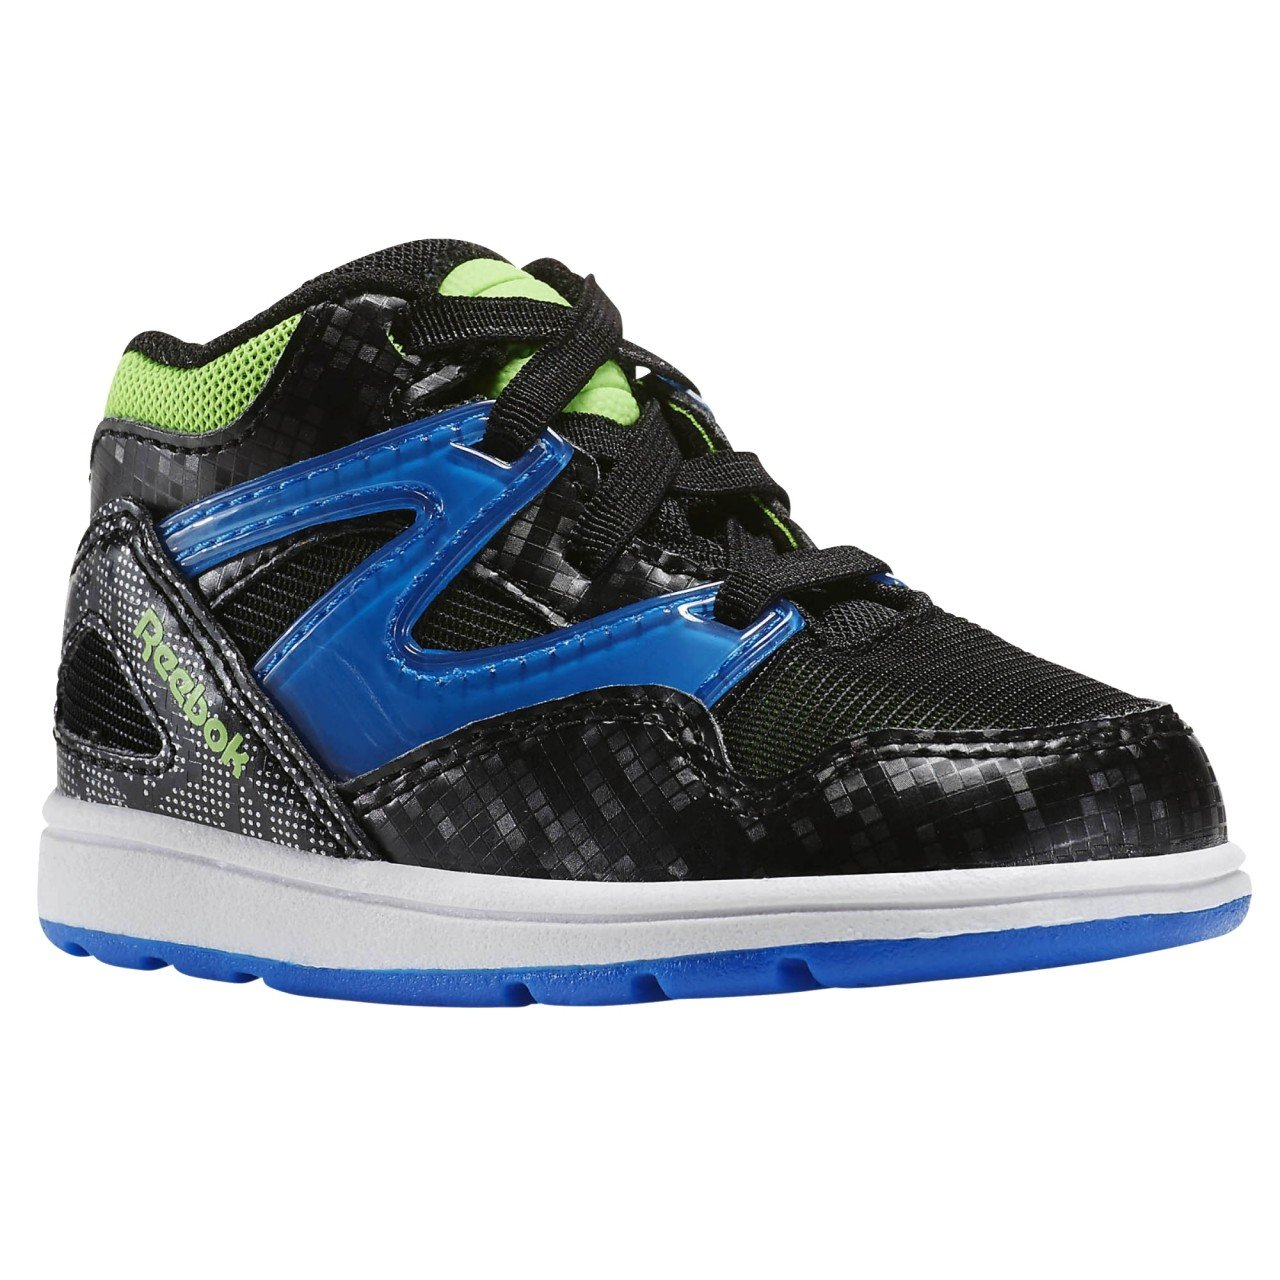 58a9ead50d9875 Reebok Unisex Babies  Versa Pump Omni Lite Sneakers  Amazon.co.uk ...